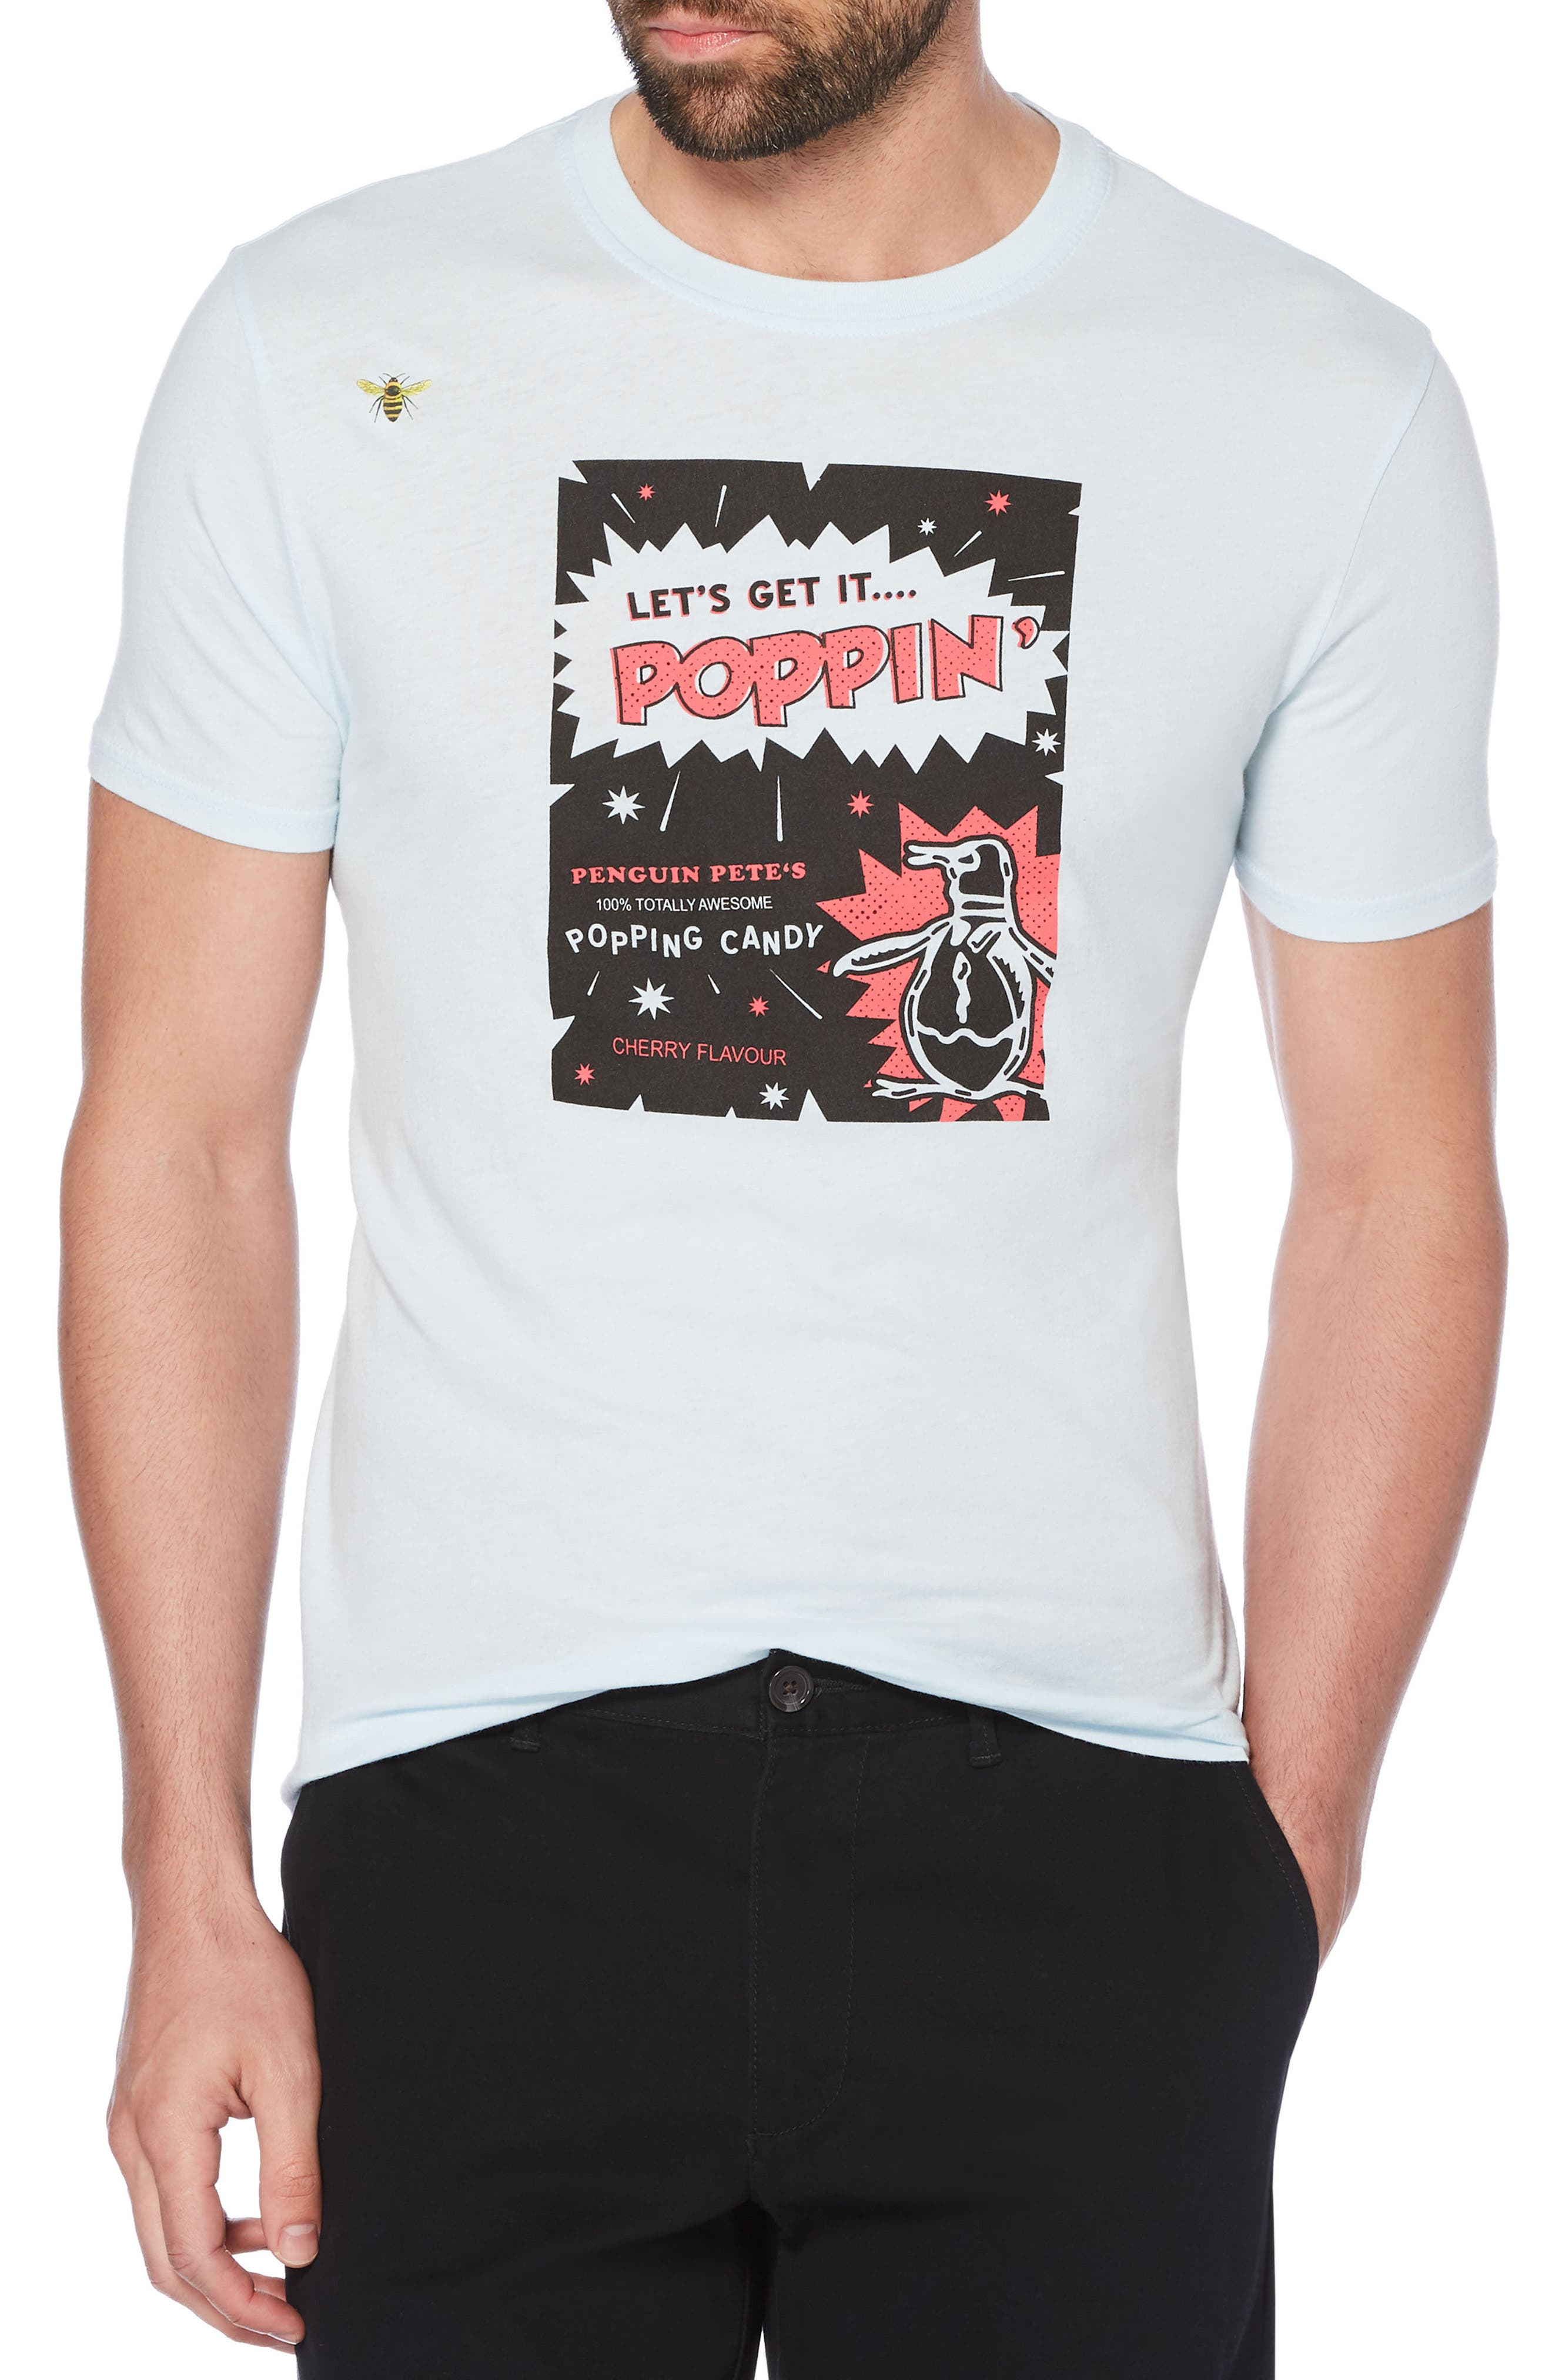 Get It Poppin' T-Shirt,                             Main thumbnail 1, color,                             Omphalodes